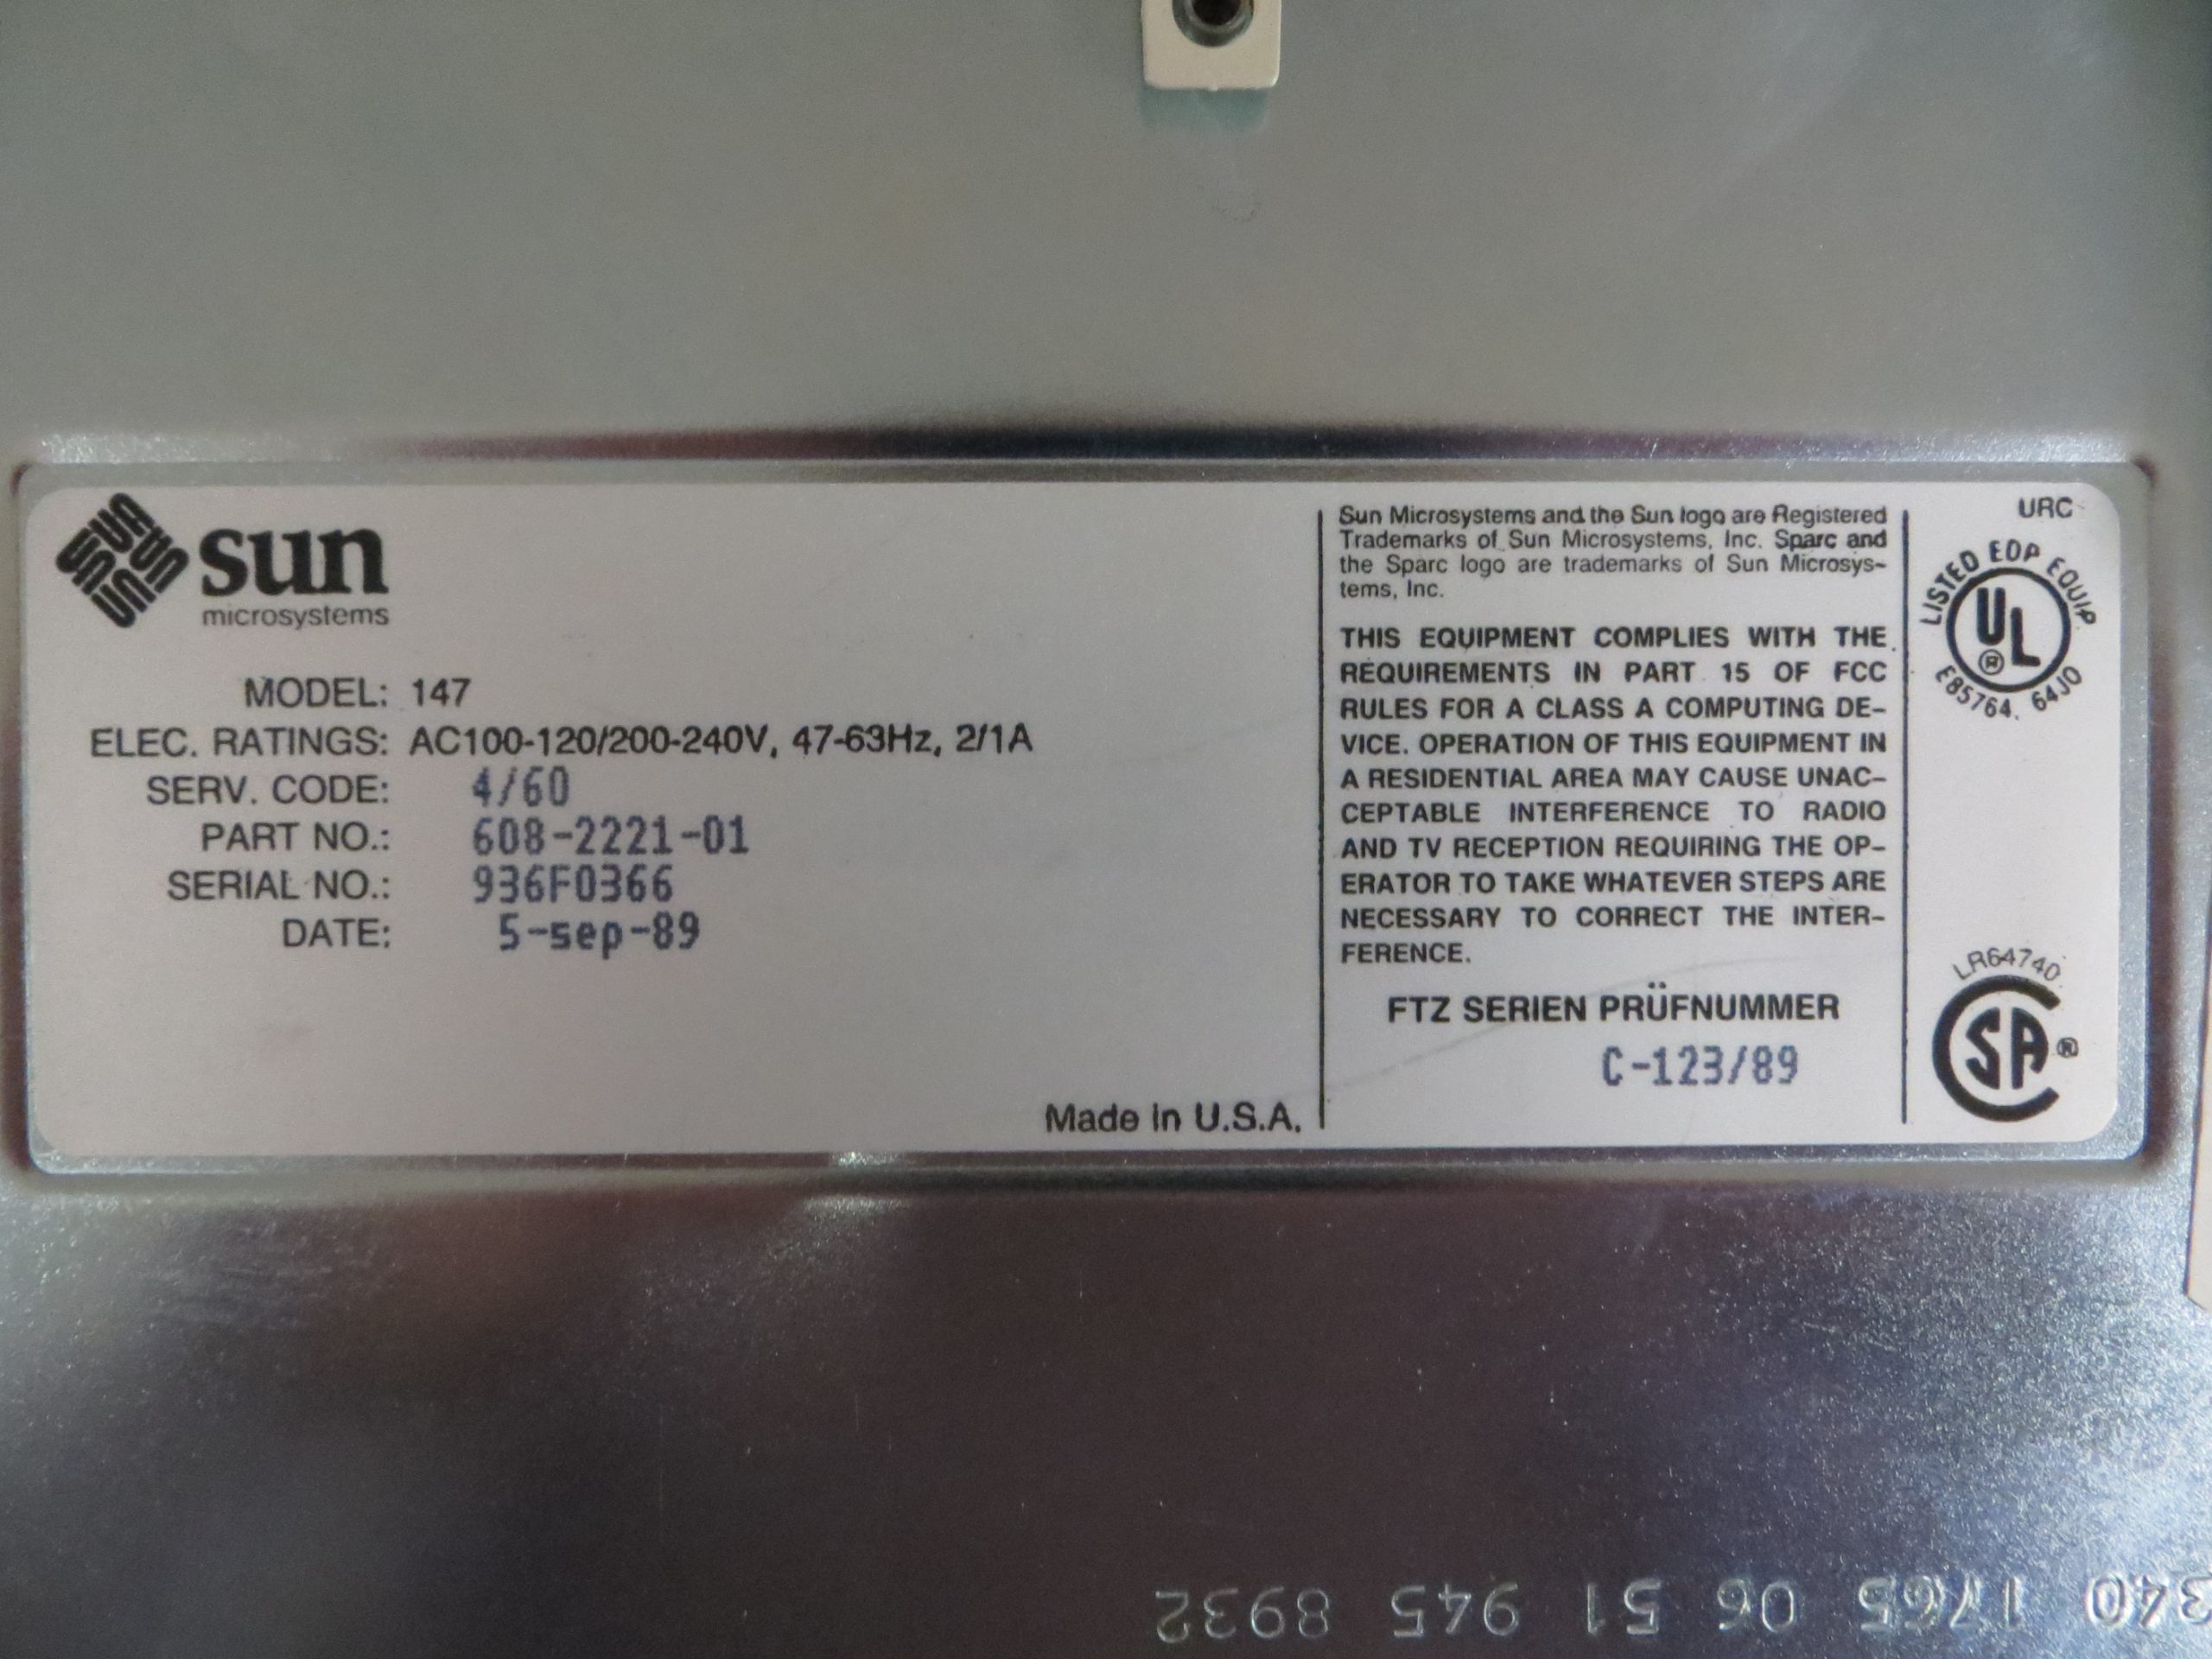 Here is the machine serial number and other manufacturing info.  Note the model is 4/60 - the other name for the Sparcstation 1.